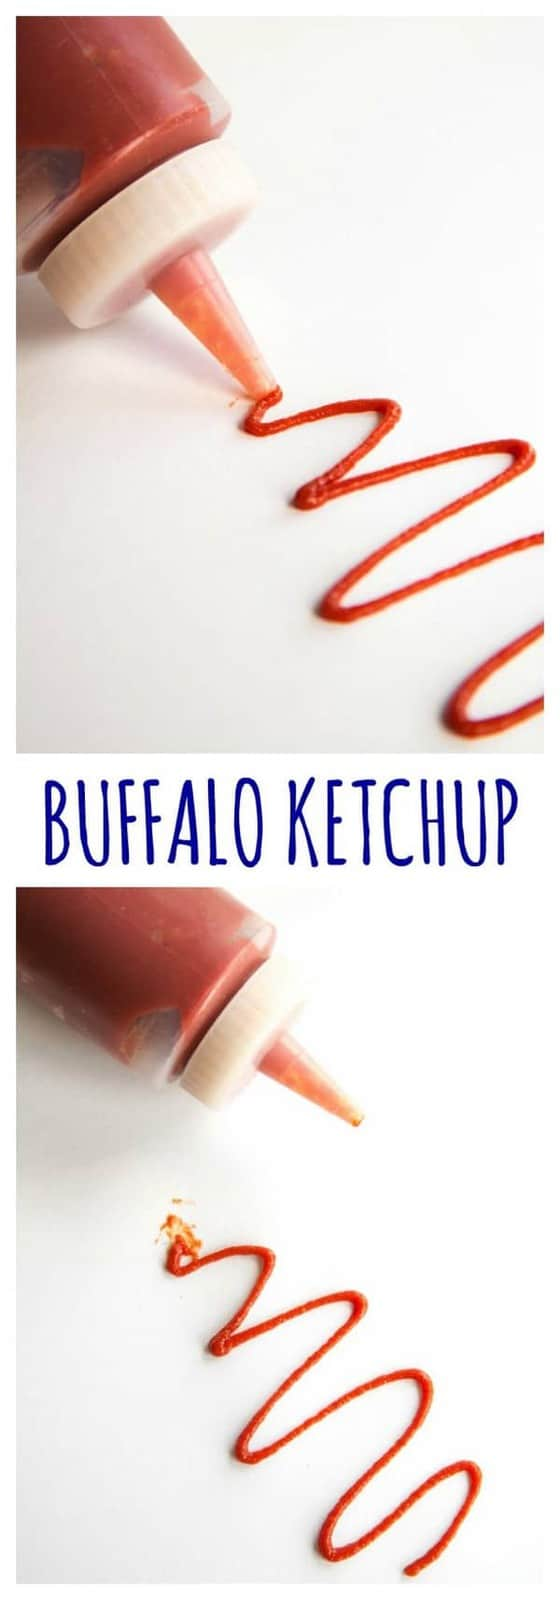 Buffalo Ketchup - kick of the classic condiment with your favorite hot sauce for your burgers and hot dogs, or a spicy dip for fries. | cupcakesandkalechips.com | gluten free, vegan recipe